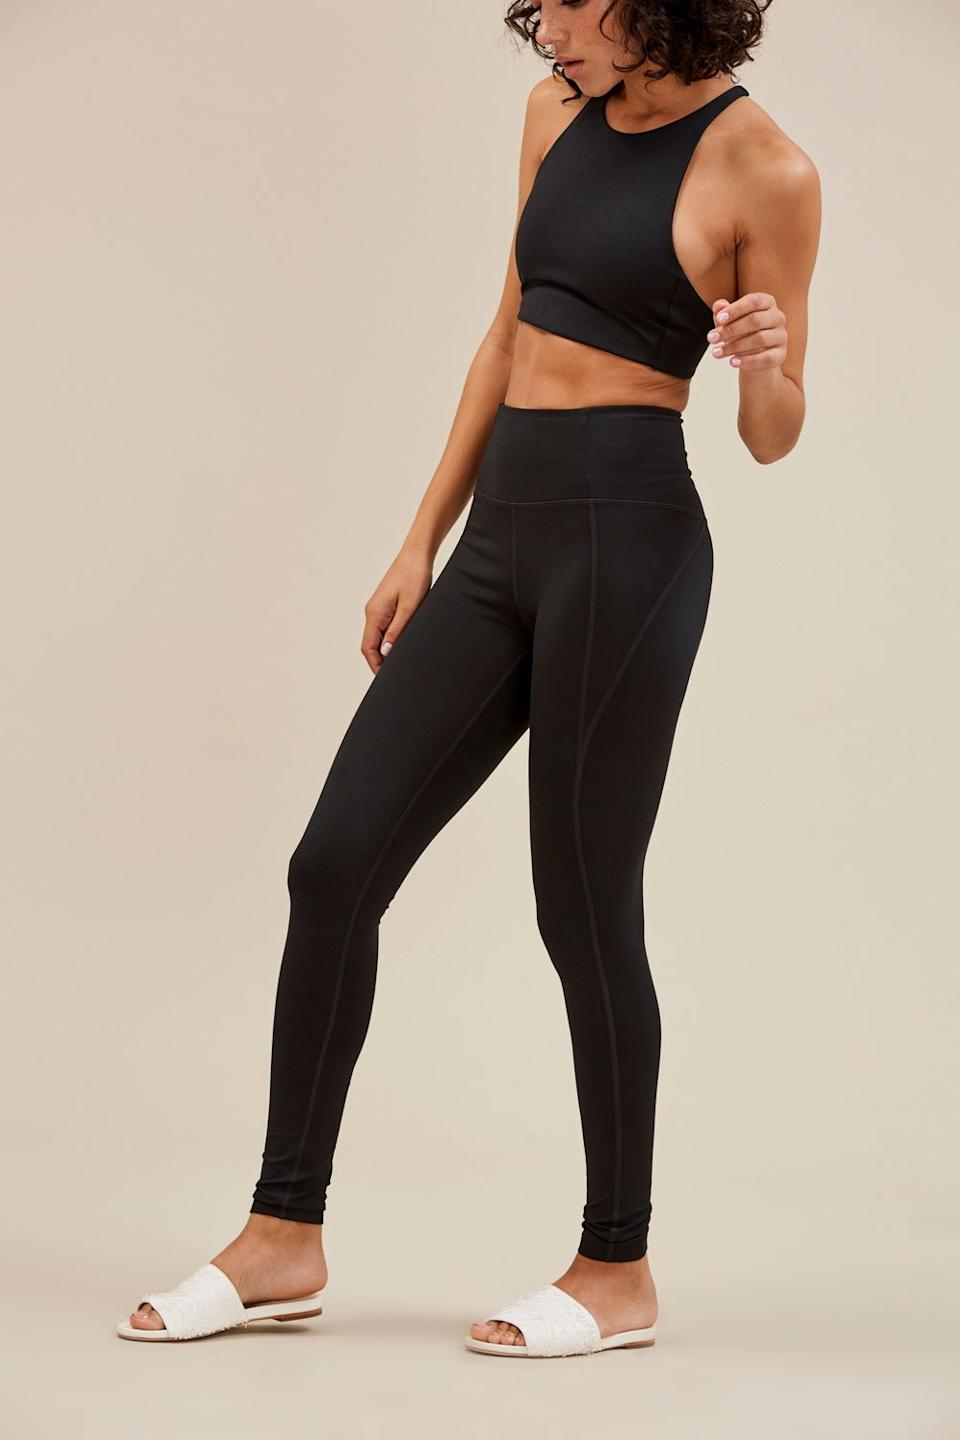 """<strong><h3>Girlfriend Collective: The """"So Good It Launched An Entire Brand"""" Legging</h3></strong> <br>Girlfriend Collective may have only launched in 2017, but thanks to these comfortable leggings made from <a href=""""https://www.refinery29.com/en-us/girlfriend-collective-leggings-lite-review"""" rel=""""nofollow noopener"""" target=""""_blank"""" data-ylk=""""slk:recycled plastic bottles"""" class=""""link rapid-noclick-resp"""">recycled plastic bottles</a>, it's already gained a cult following.<br><br><strong>The hype:</strong> 4.8 out of 5 stars and 2,644 reviews on Girlfriend Collective<br><br><strong>What they're saying:</strong> """"I saw the reviews too. I was skeptical too. I thought """"they're just a pair of leggings, why are people so obsessed?"""" too. But they are. They really are just the best leggings. They have the perfect amount of compression - enough to keep you together but not a battle to get in to. They're the perfect rise. They don't go sheer. They don't pill. They just work so well. I don't even notice I've sweat in these. I love."""" - Madeline G., Girlfriend Collective Review<br><br><strong>Girlfriend Collective</strong> Black Compressive High-rise Legging, $, available at <a href=""""https://www.girlfriend.com/collections/leggings/products/black-compressive-high-rise-legging"""" rel=""""nofollow noopener"""" target=""""_blank"""" data-ylk=""""slk:Girlfriend Collective"""" class=""""link rapid-noclick-resp"""">Girlfriend Collective</a><br><br><br><br><br>"""